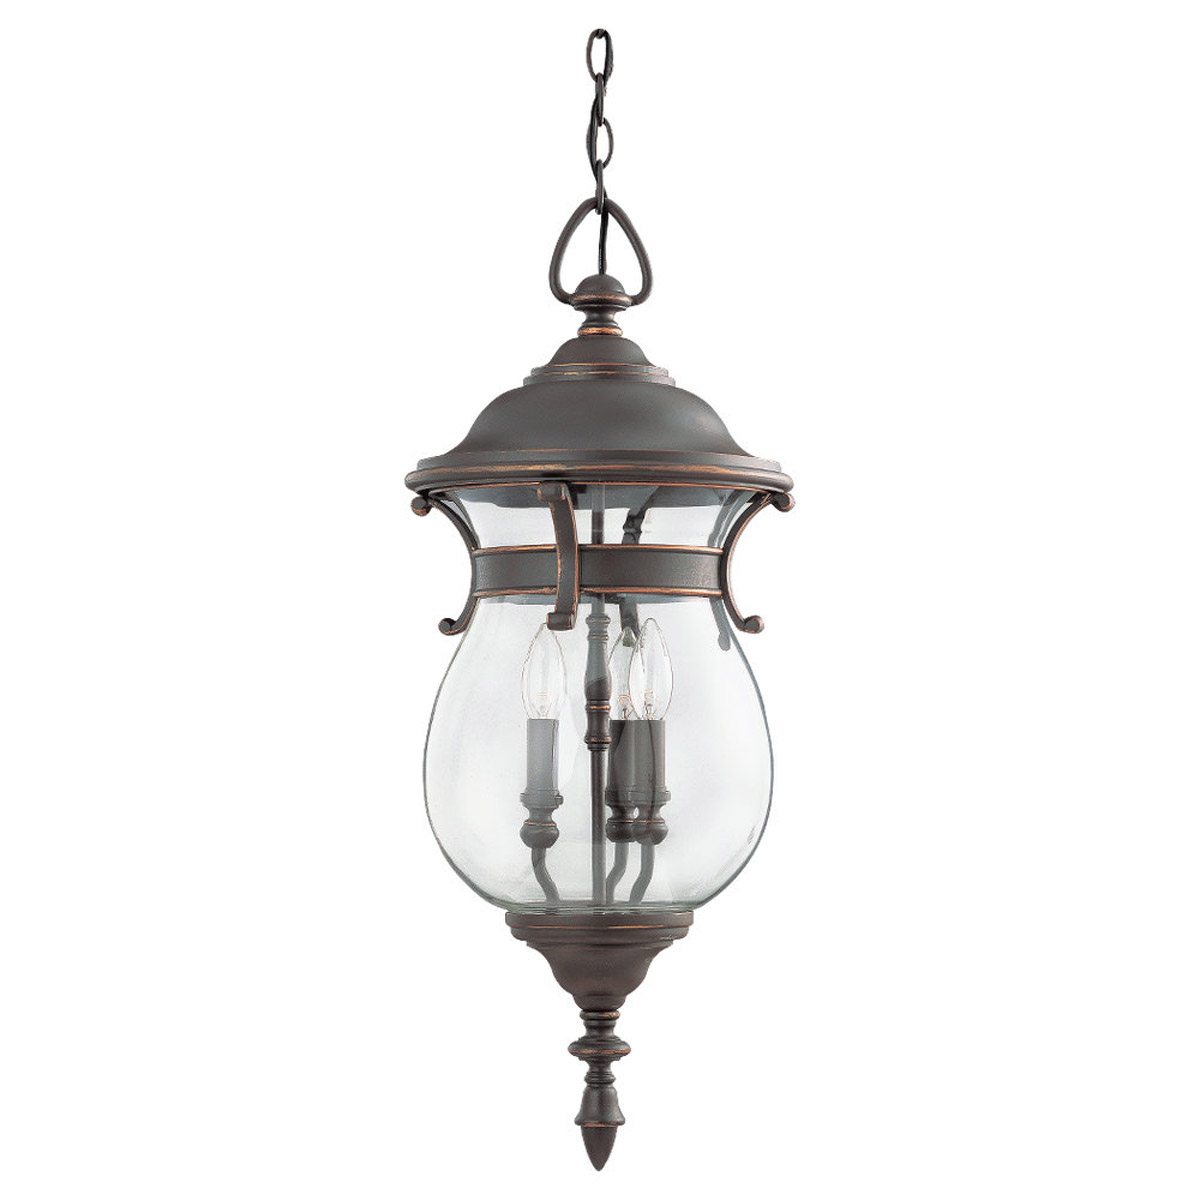 Sea Gull Lighting Triumphant 3 Light Outdoor Pendant in Mojave Luster 60225-764 photo